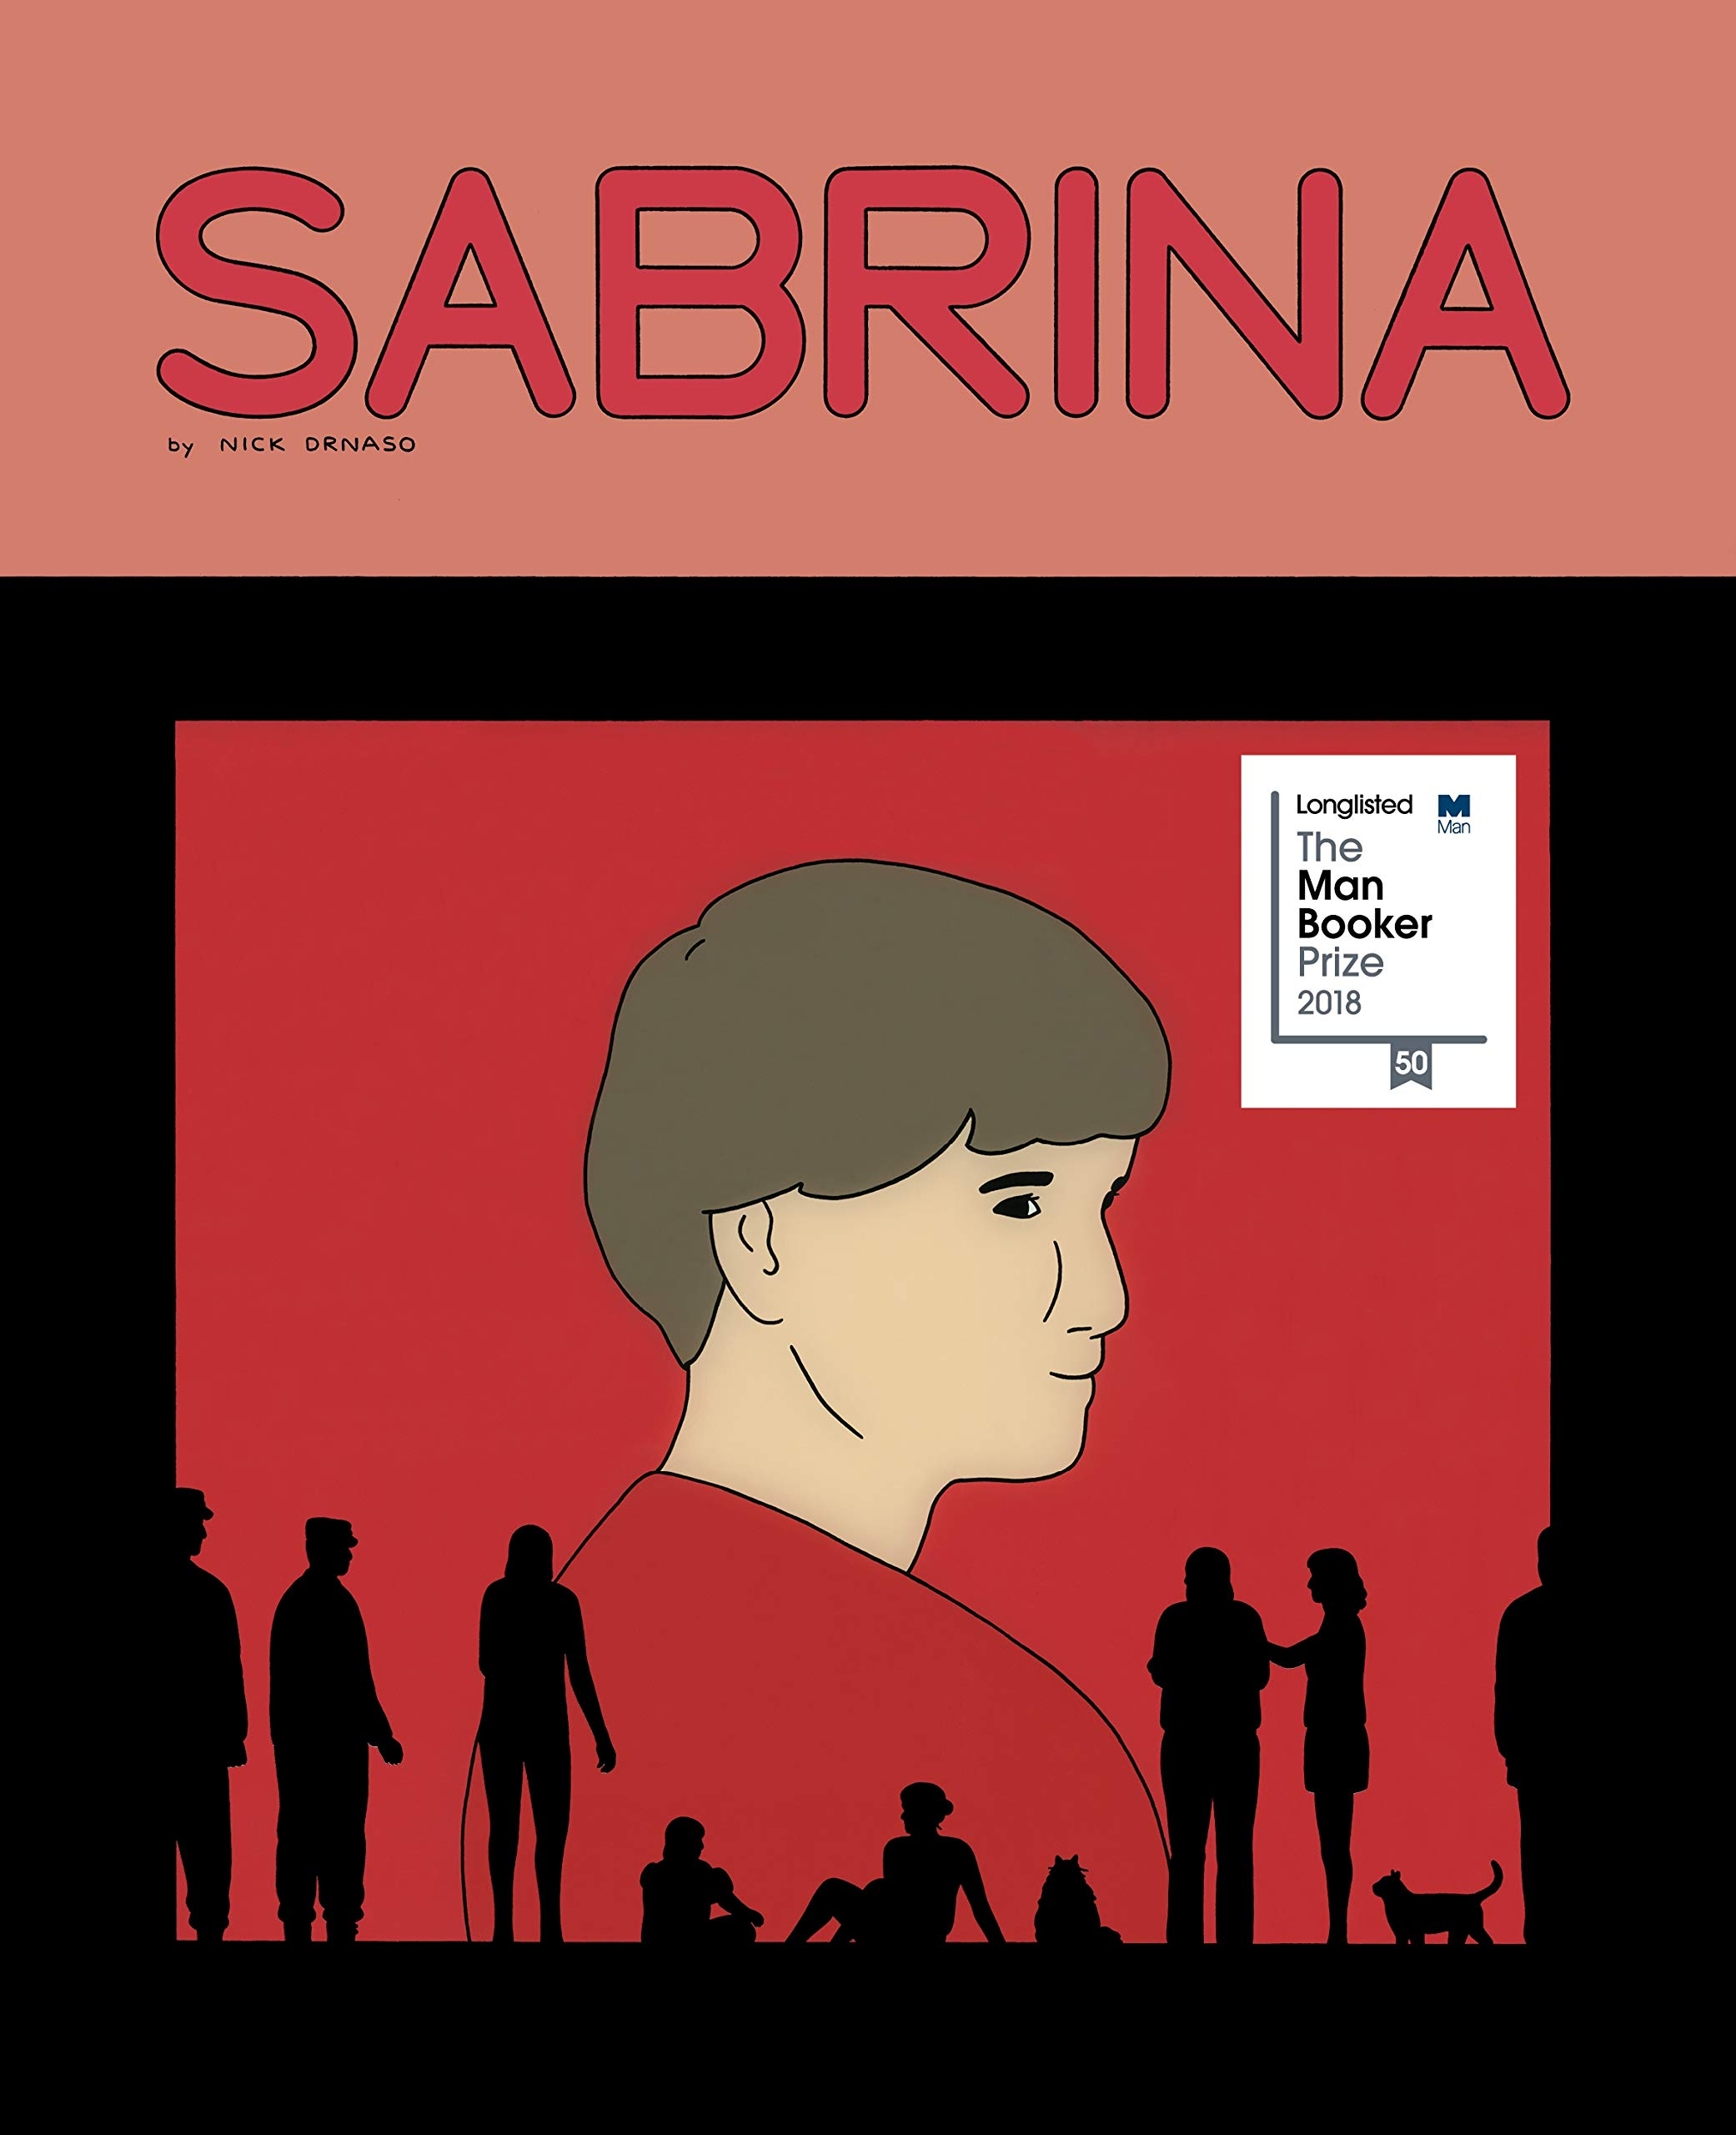 The 100 Best Comics of the Decade: Sabrina